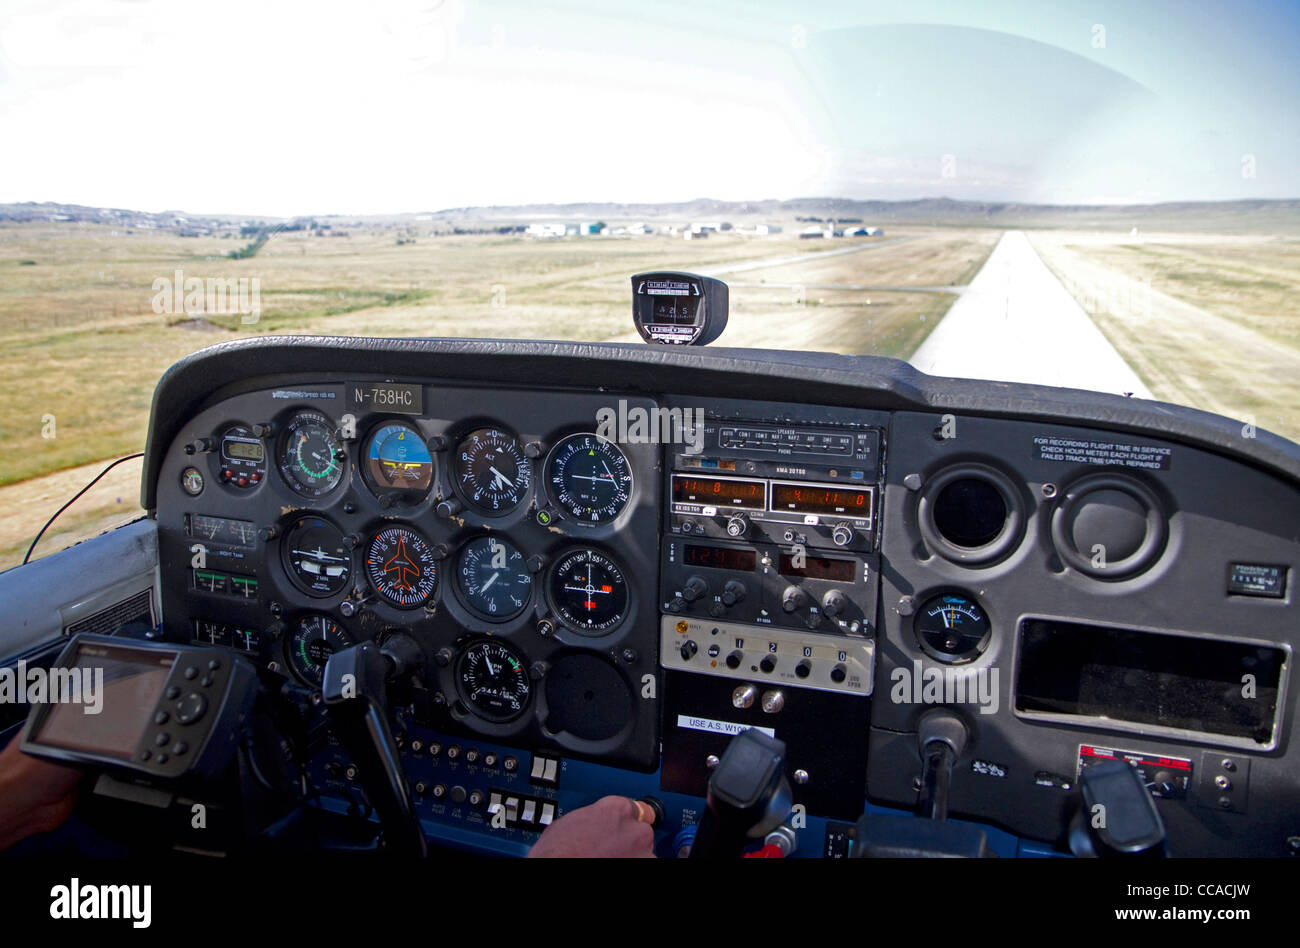 Cessna 172 Cockpit Stock Photos & Cessna 172 Cockpit Stock